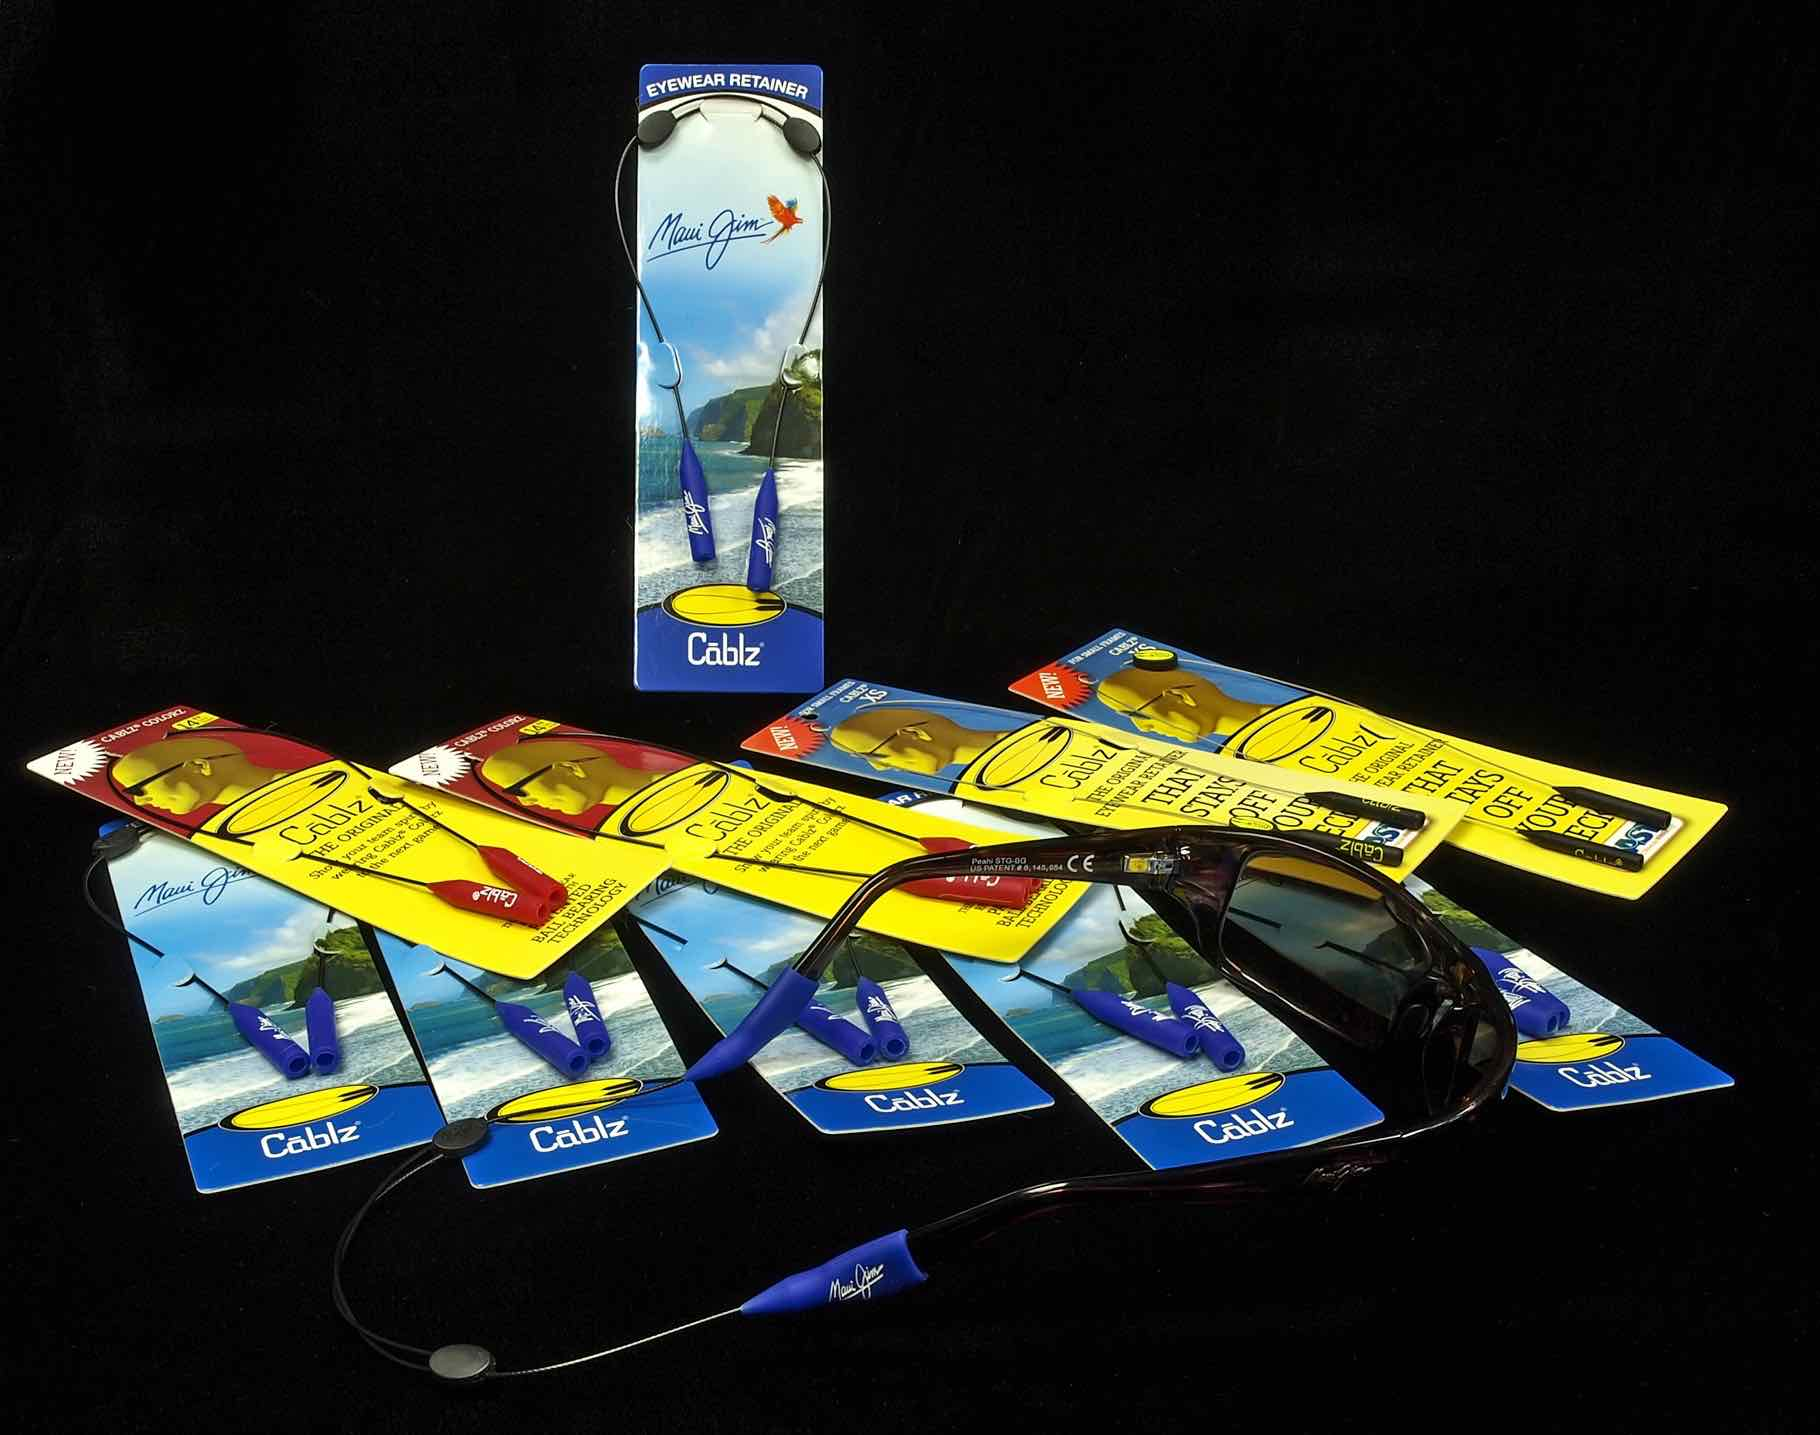 Maui jim lanyards the first cast hook line and sinker for Maui fishing store